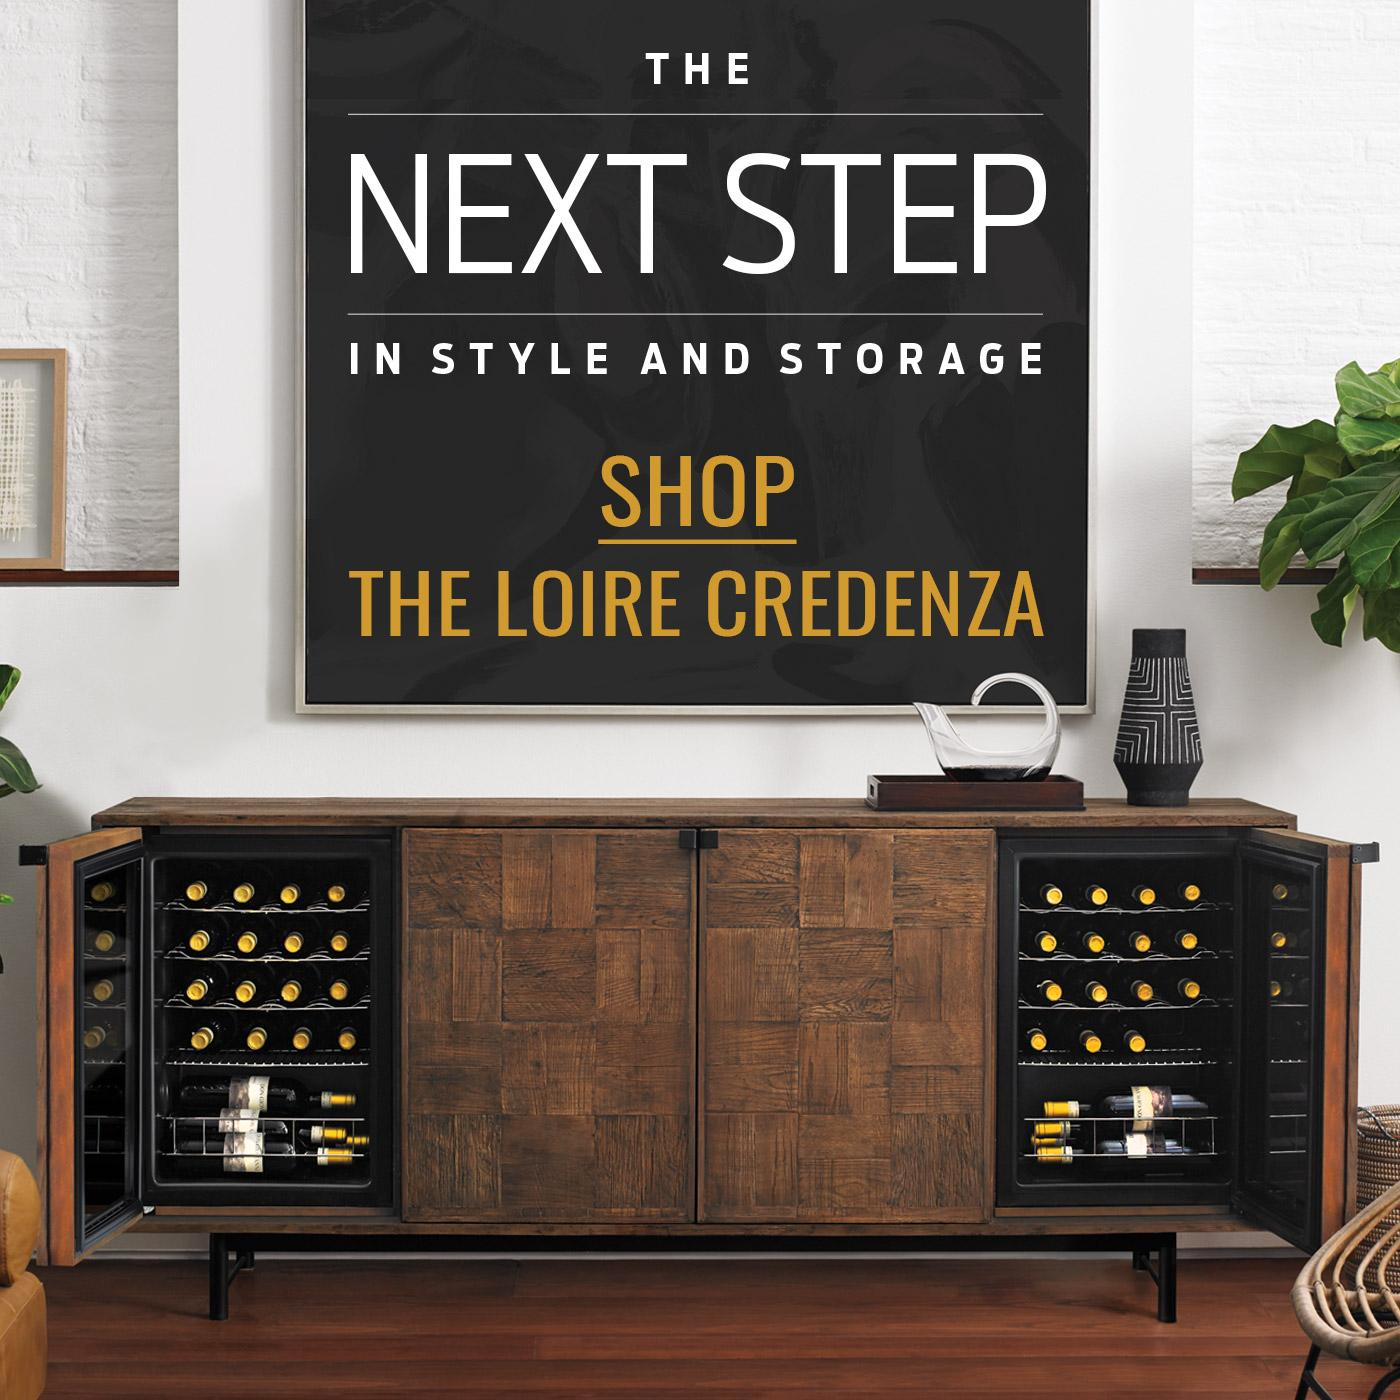 The Next Step in Style and Storage Shop the Loire Credenza